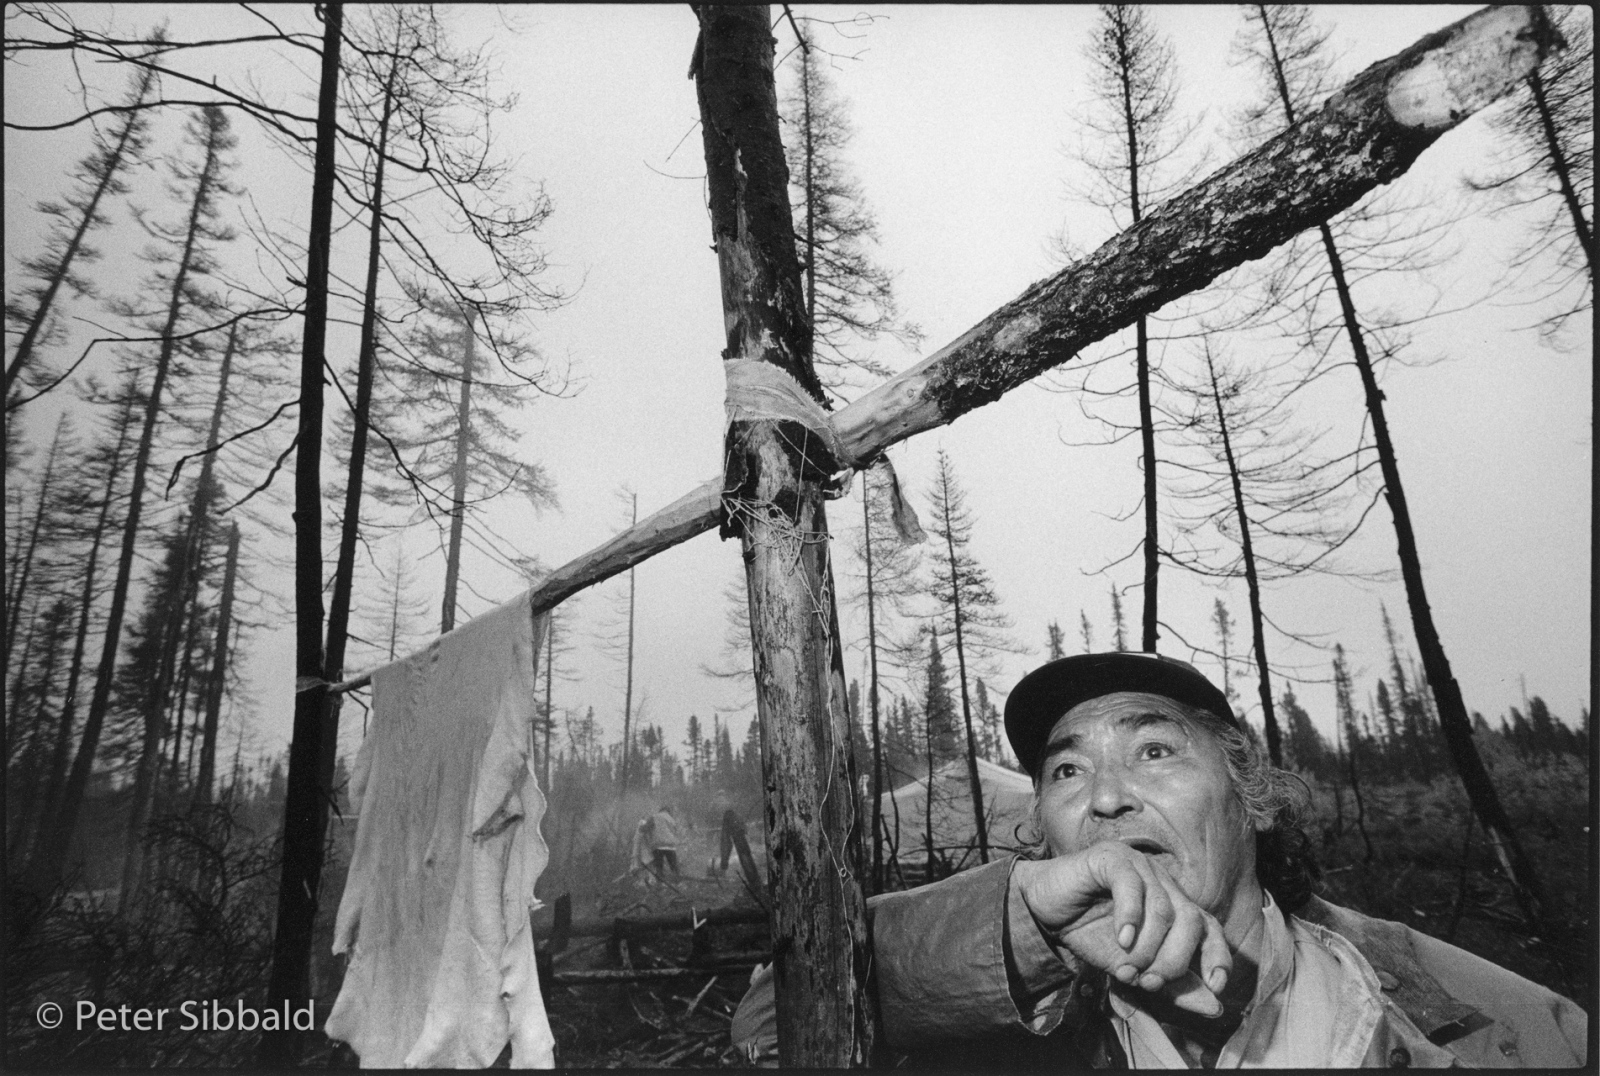 "Four Mile Road, near Sheshatshiu, Nitassinan /Labrador. On his way to check a caribou hide drying on a spruce frame, Innu elder Spatieish (Sabastian) Penunsi pauses to reflect on the roar of a near-flying fighter jet unseen through the fog. Since the mid-1980s the Innu have staged ongoing protests against the NATO fighter-jet training which variously the UK, The Netherlands, Germany, Italy, France, Belgium have conducted over land the Innu consider to be their ancestral hunting grounds. Innu elders like Penunsi say that they have observed negative impacts on wild-foul and caribou. Western scientific studies of such impacts have been relatively inconclusive or oddly tend to support the interests of their commissioners.. In country Spatieish is a consummate hunter and woodsman, but during the time I have also known him in the Sheshatshiu, he was often depressed, angry, and rarely sober, barely a shadow of the man I photographed that day. I've often thought of Sheshatshiu as the ""Village of Lost Souls"", though there have been indications that this has been changing for the better over time.."